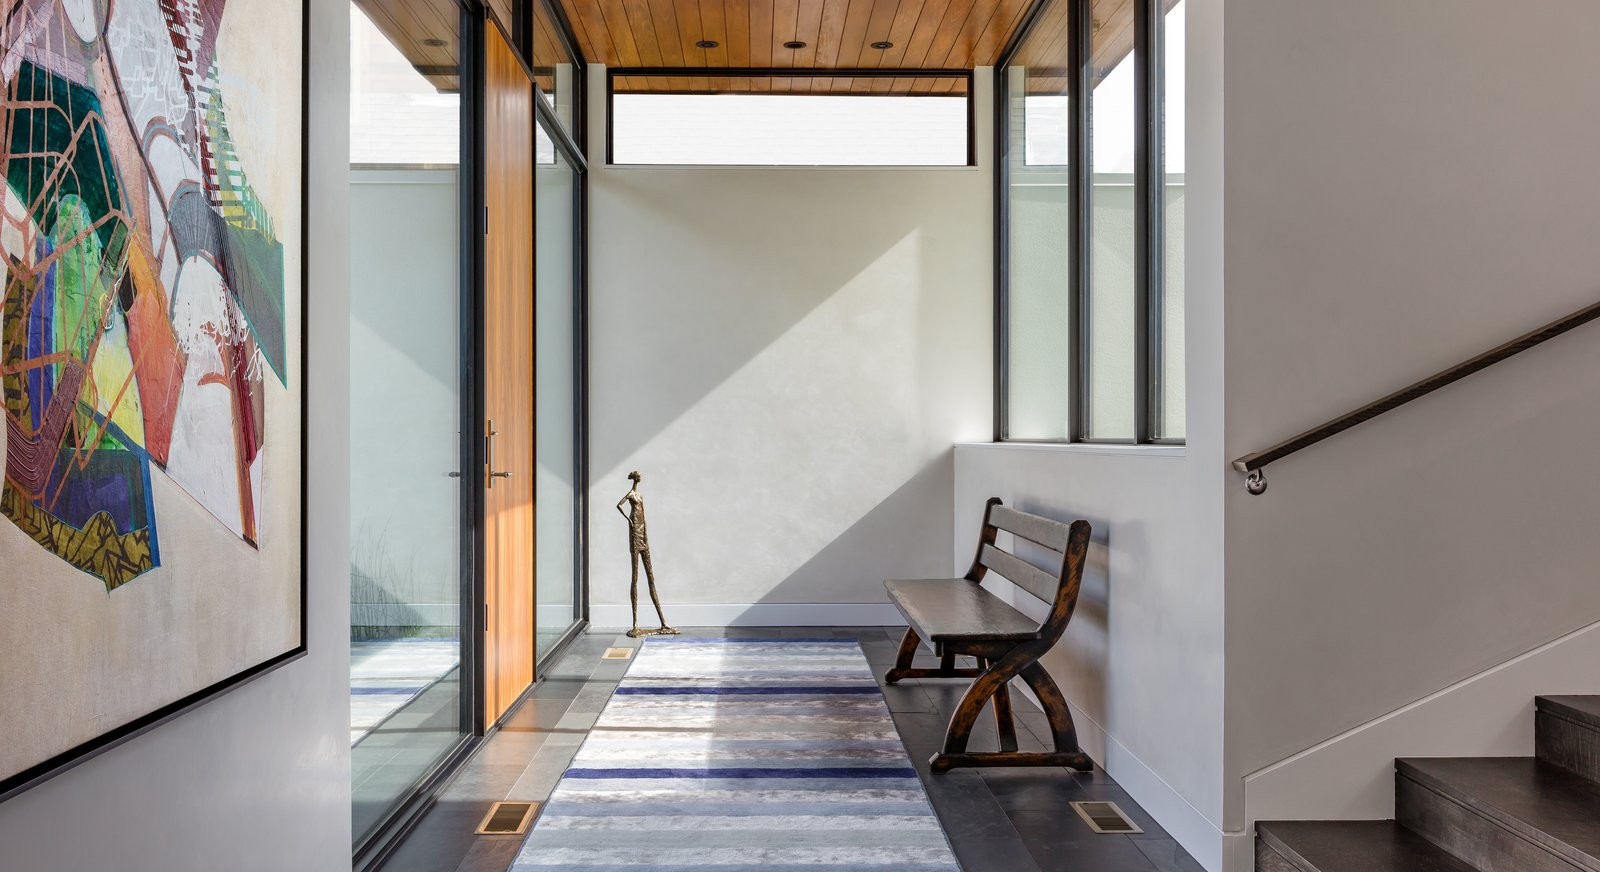 Tagged: Ceramic Tile Floor, Exterior, Swing Door Type, Windows, Picture Window Type, and Metal.  Calhoun Pavilions Residence by Peterssen/Keller Architecture